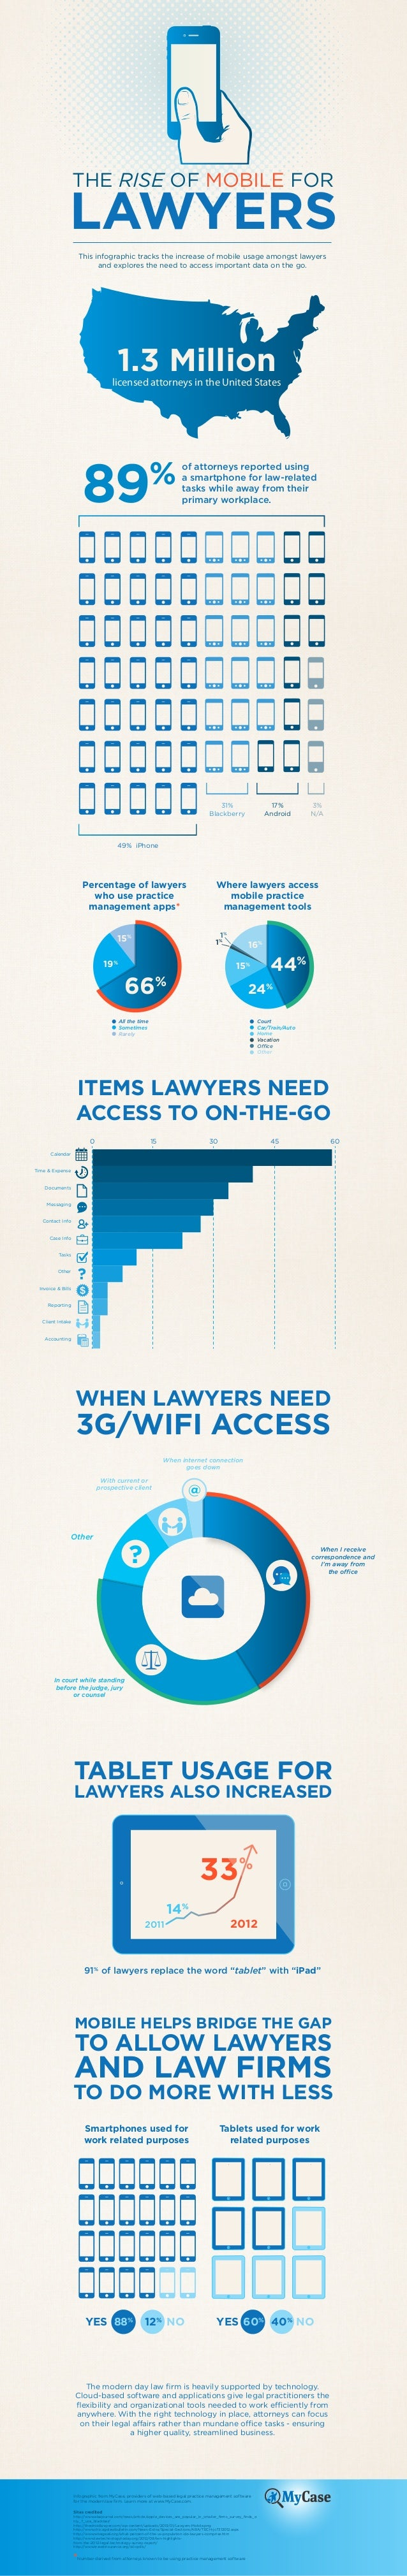 THE RISE OF MOBILE FOR  LAWYERS This infographic tracks the increase of mobile usage amongst lawyers and explores the need...